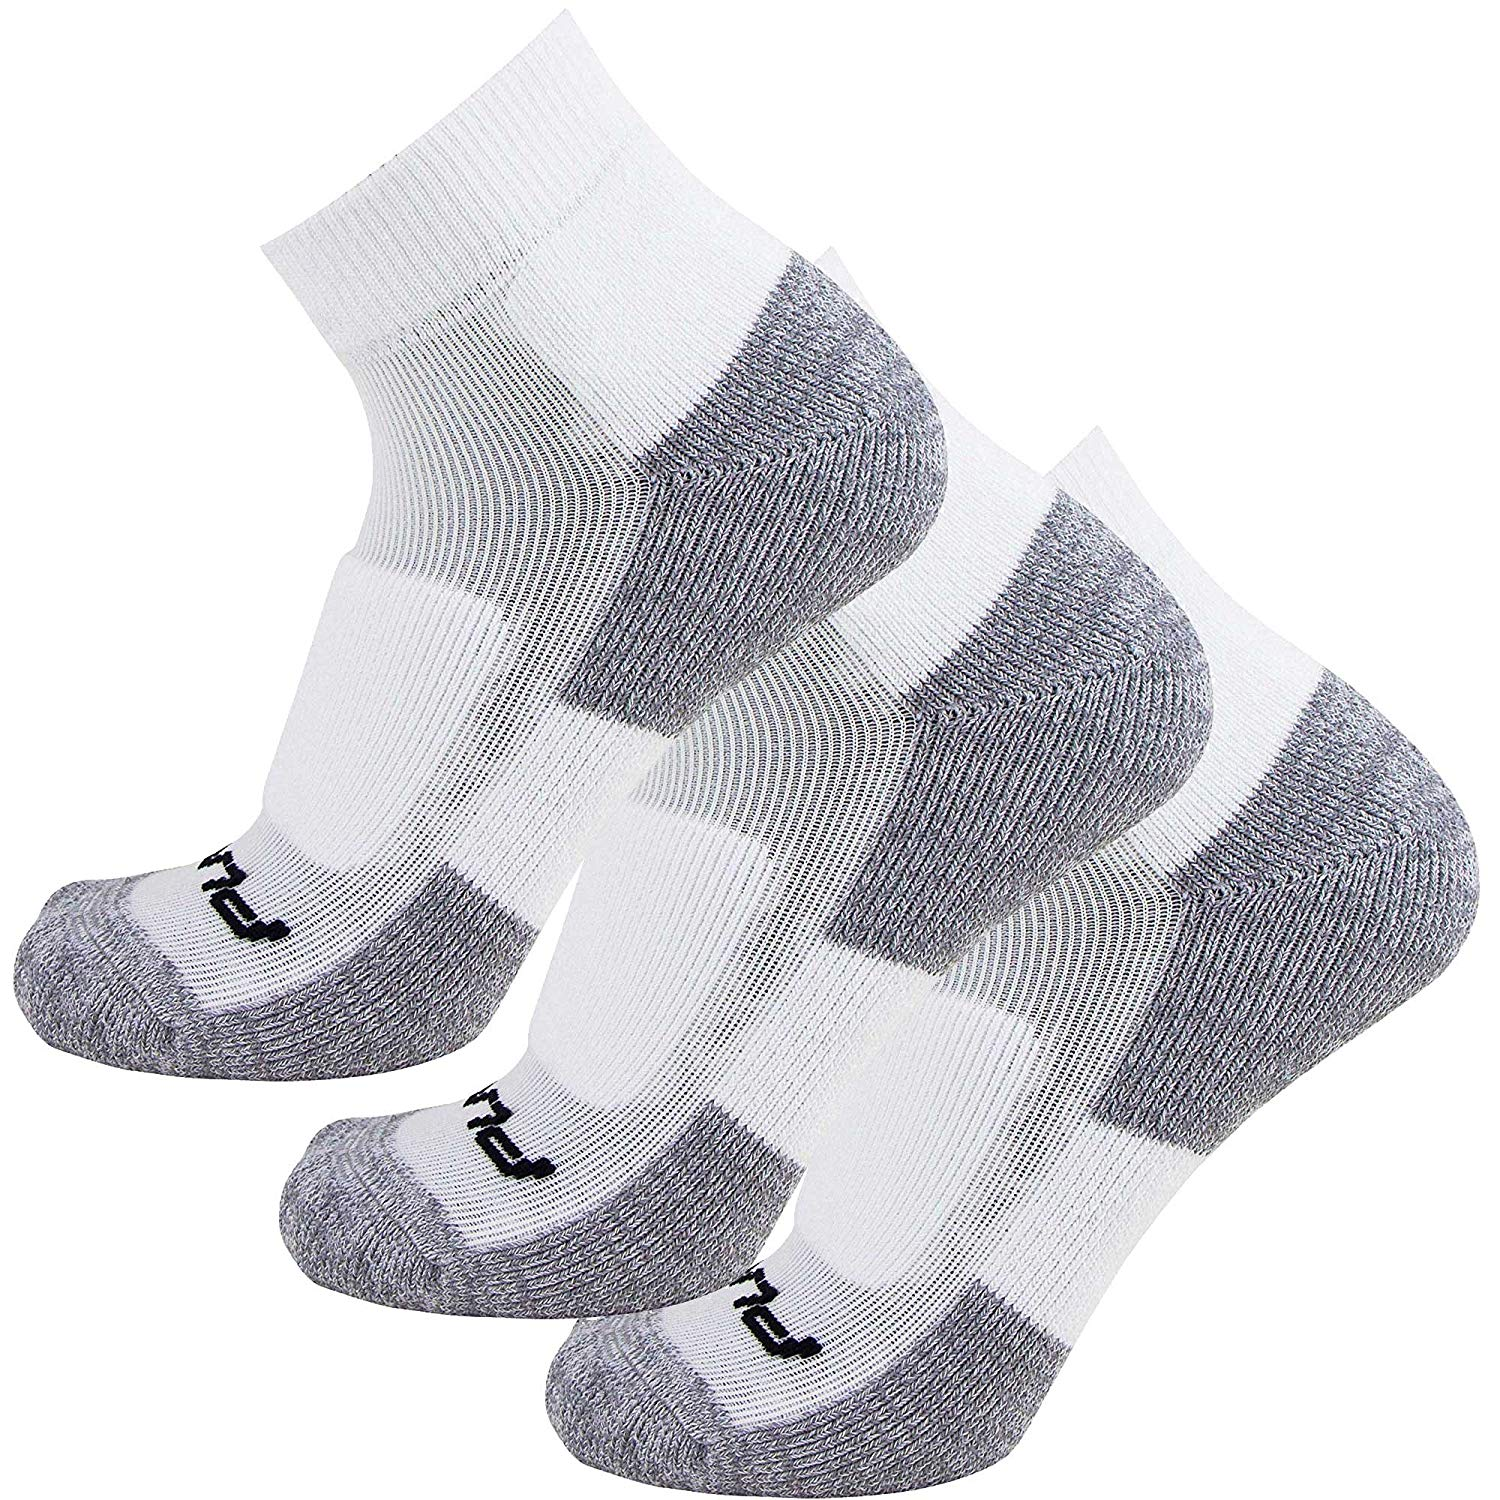 Comfortable Padded Walking Socks Use for Jogging Running Pure Compression Walking Socks Working Out